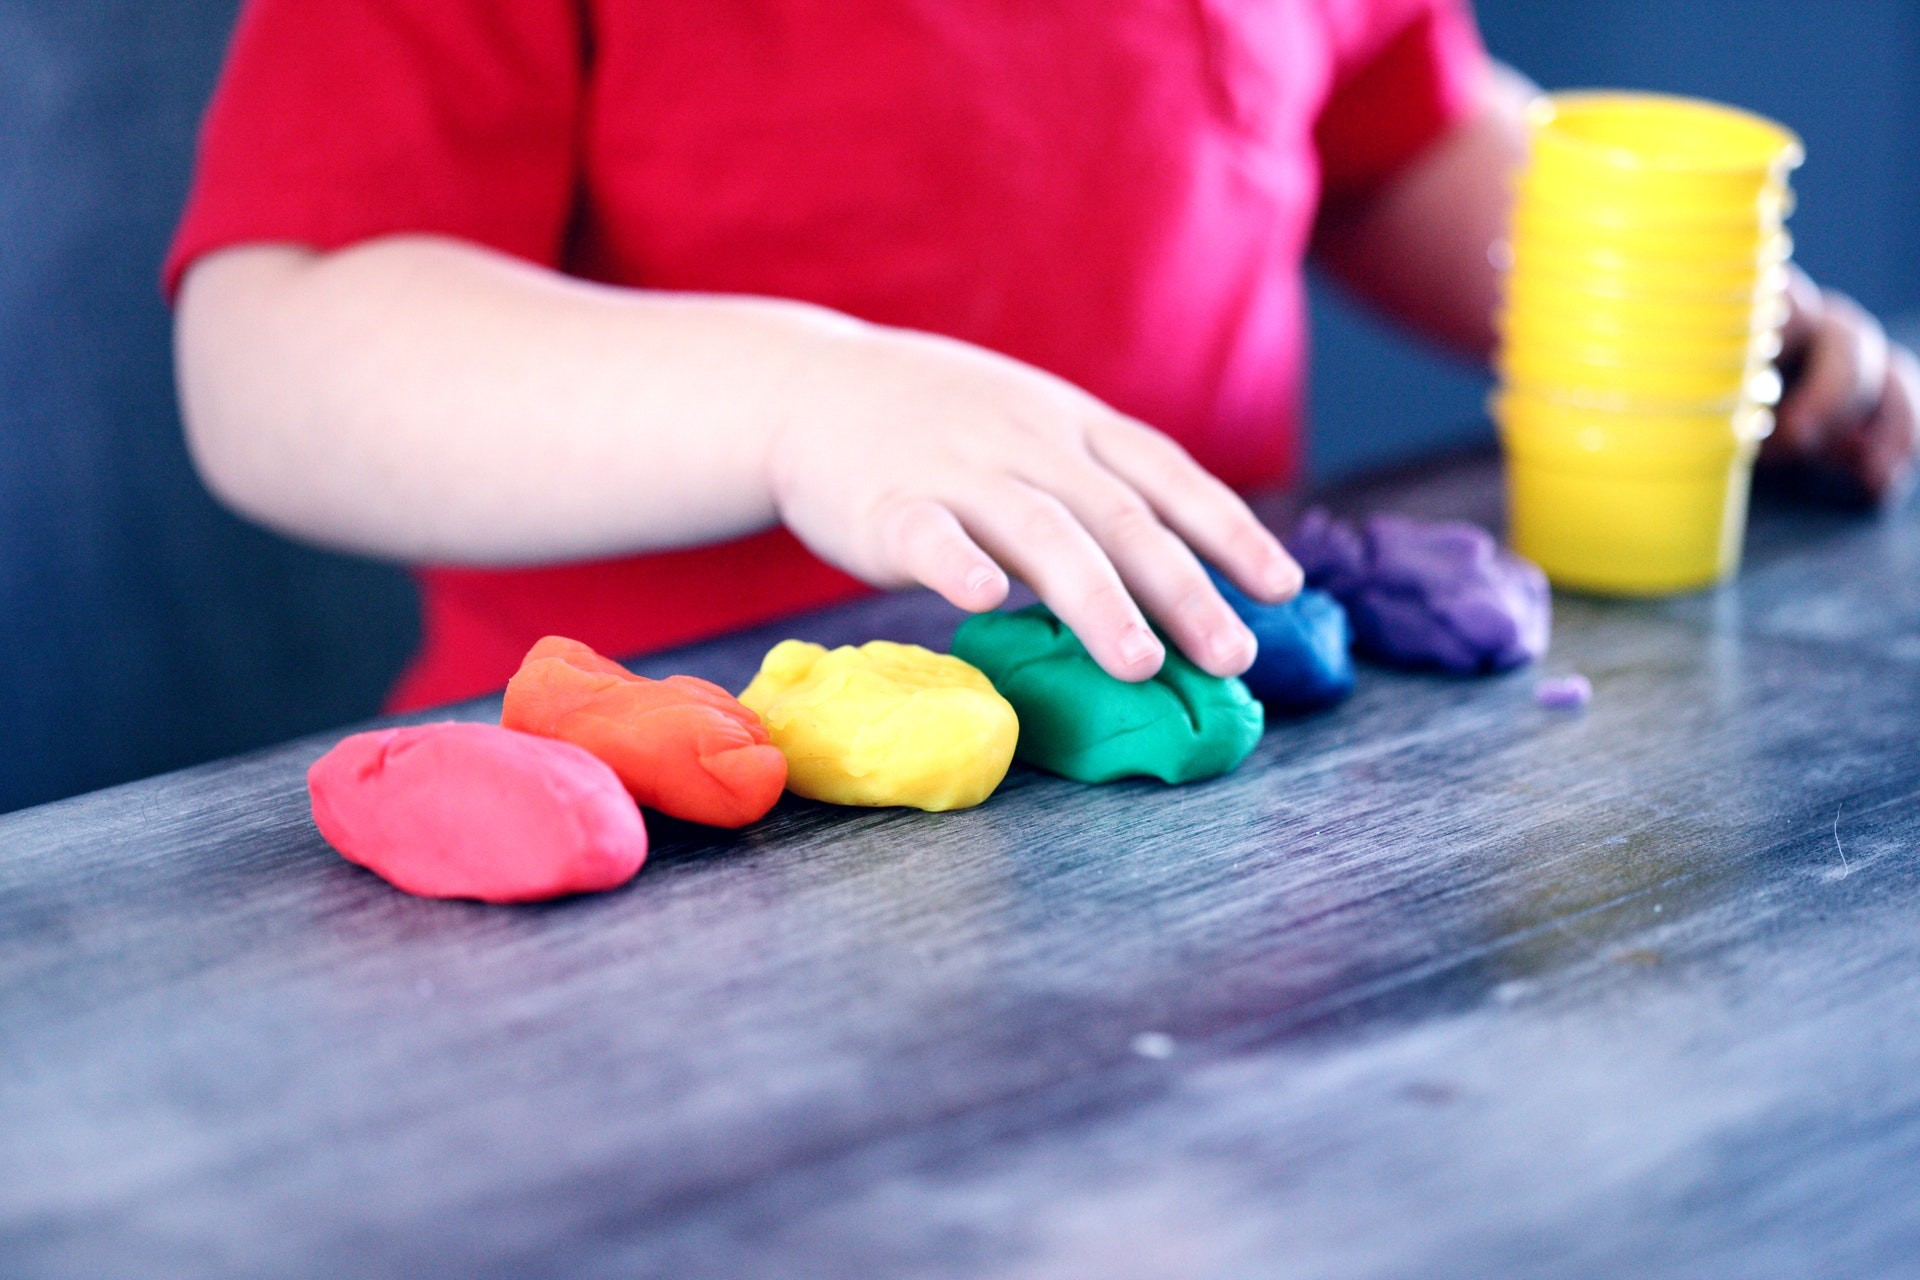 A young learner plays with playdough during geometry activities